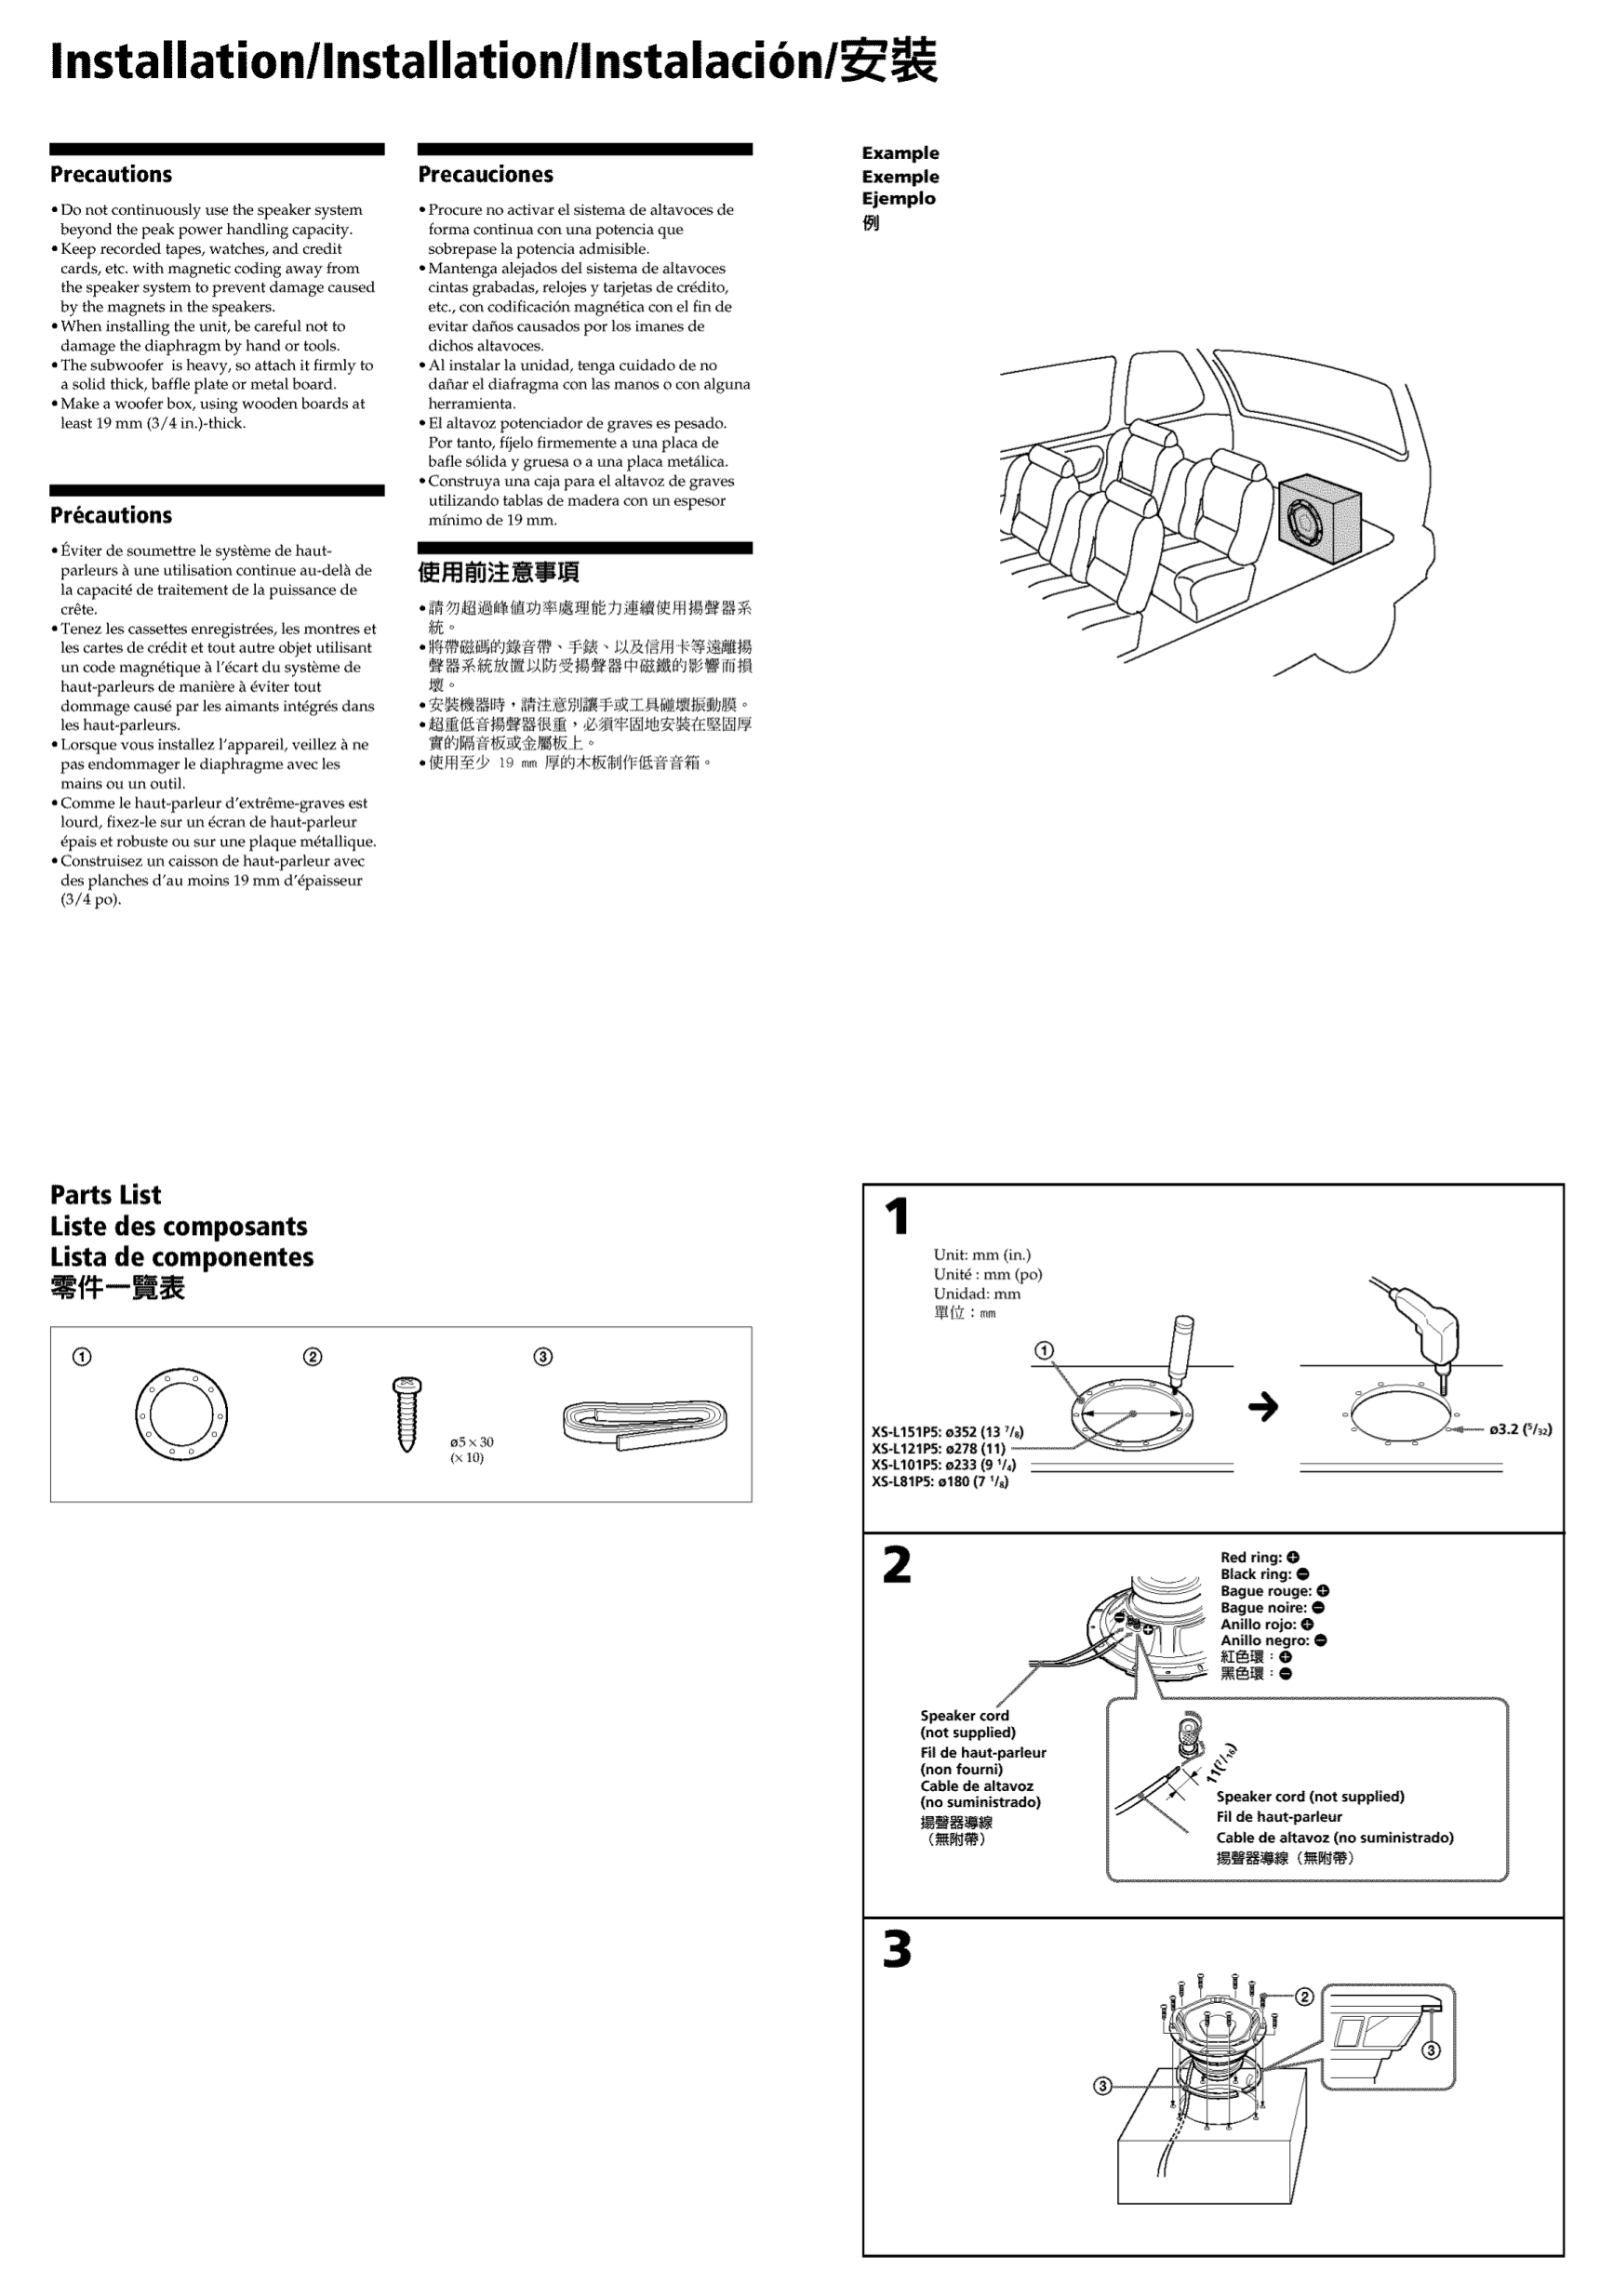 PDF manual for Sony Subwoofer Xplod XS-L121P5